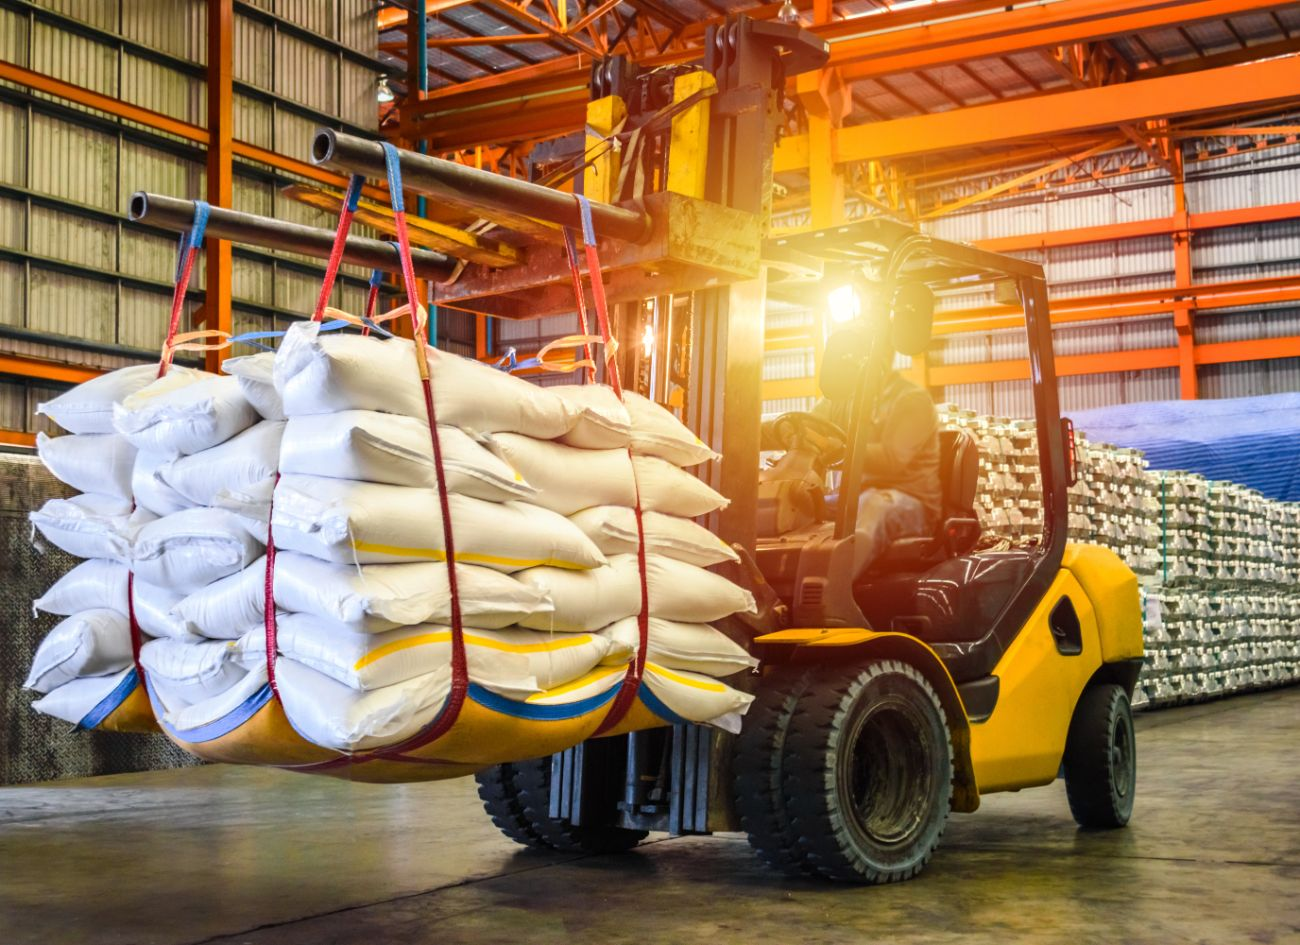 Forklift driver material handling at food warehouse for raw goods